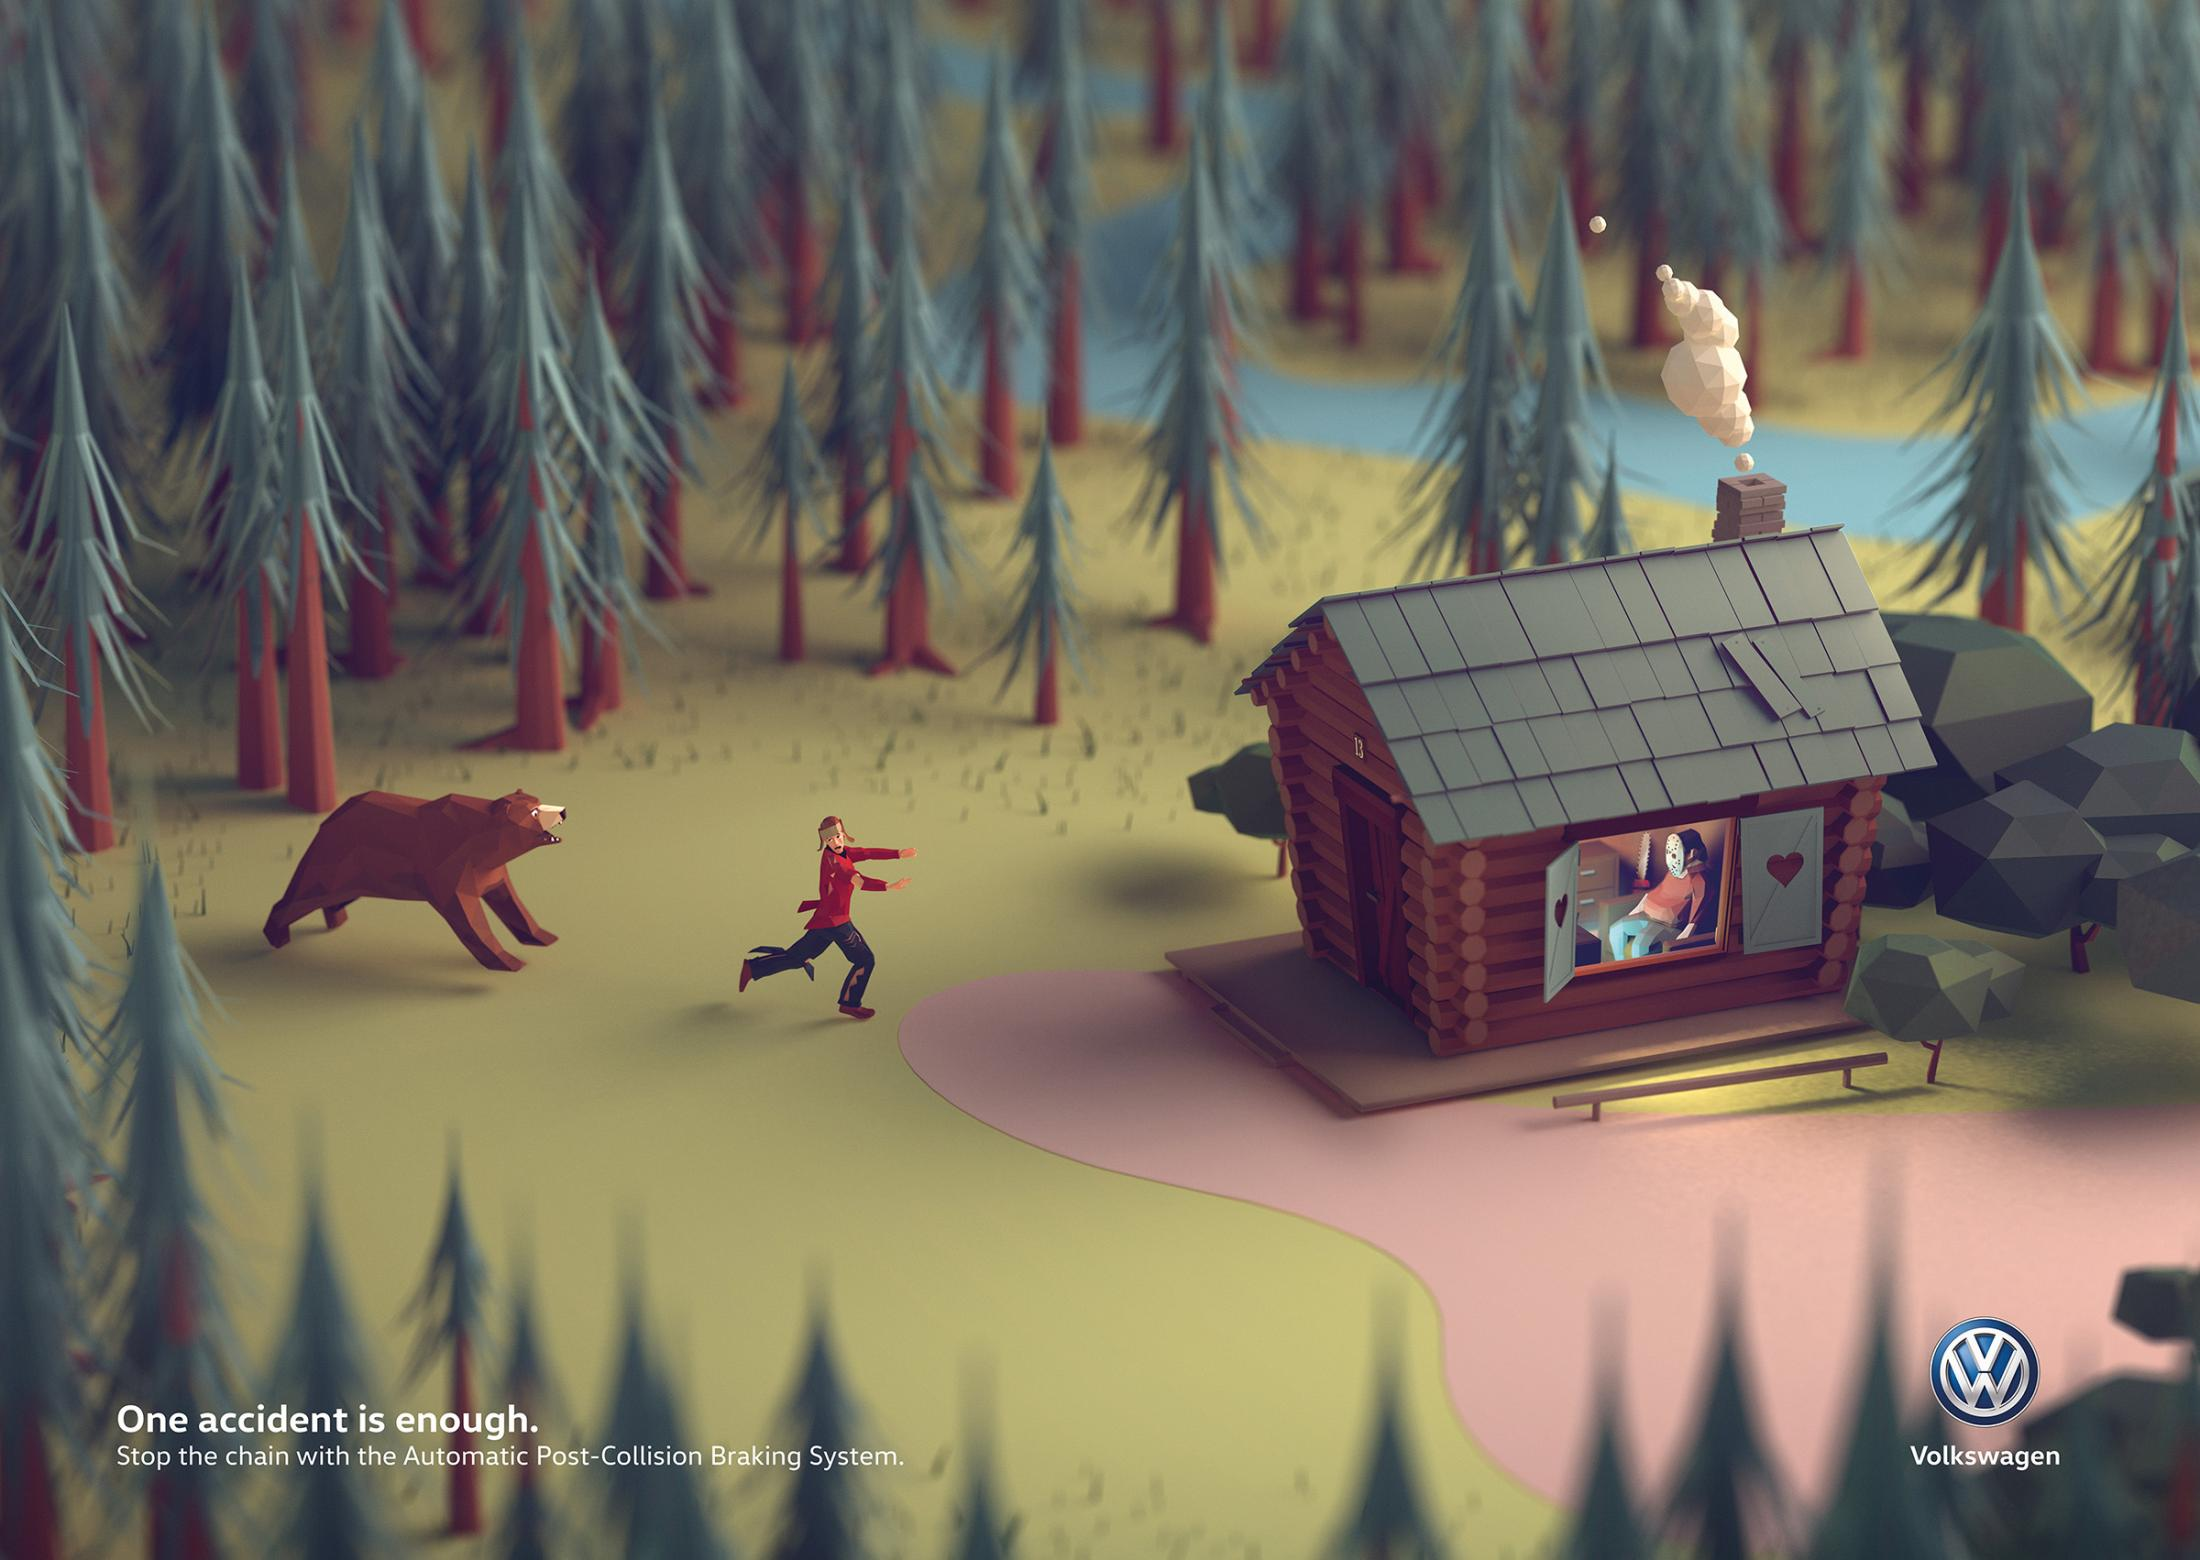 Volkswagen Print Ad - One Accident Is Enough, Forest